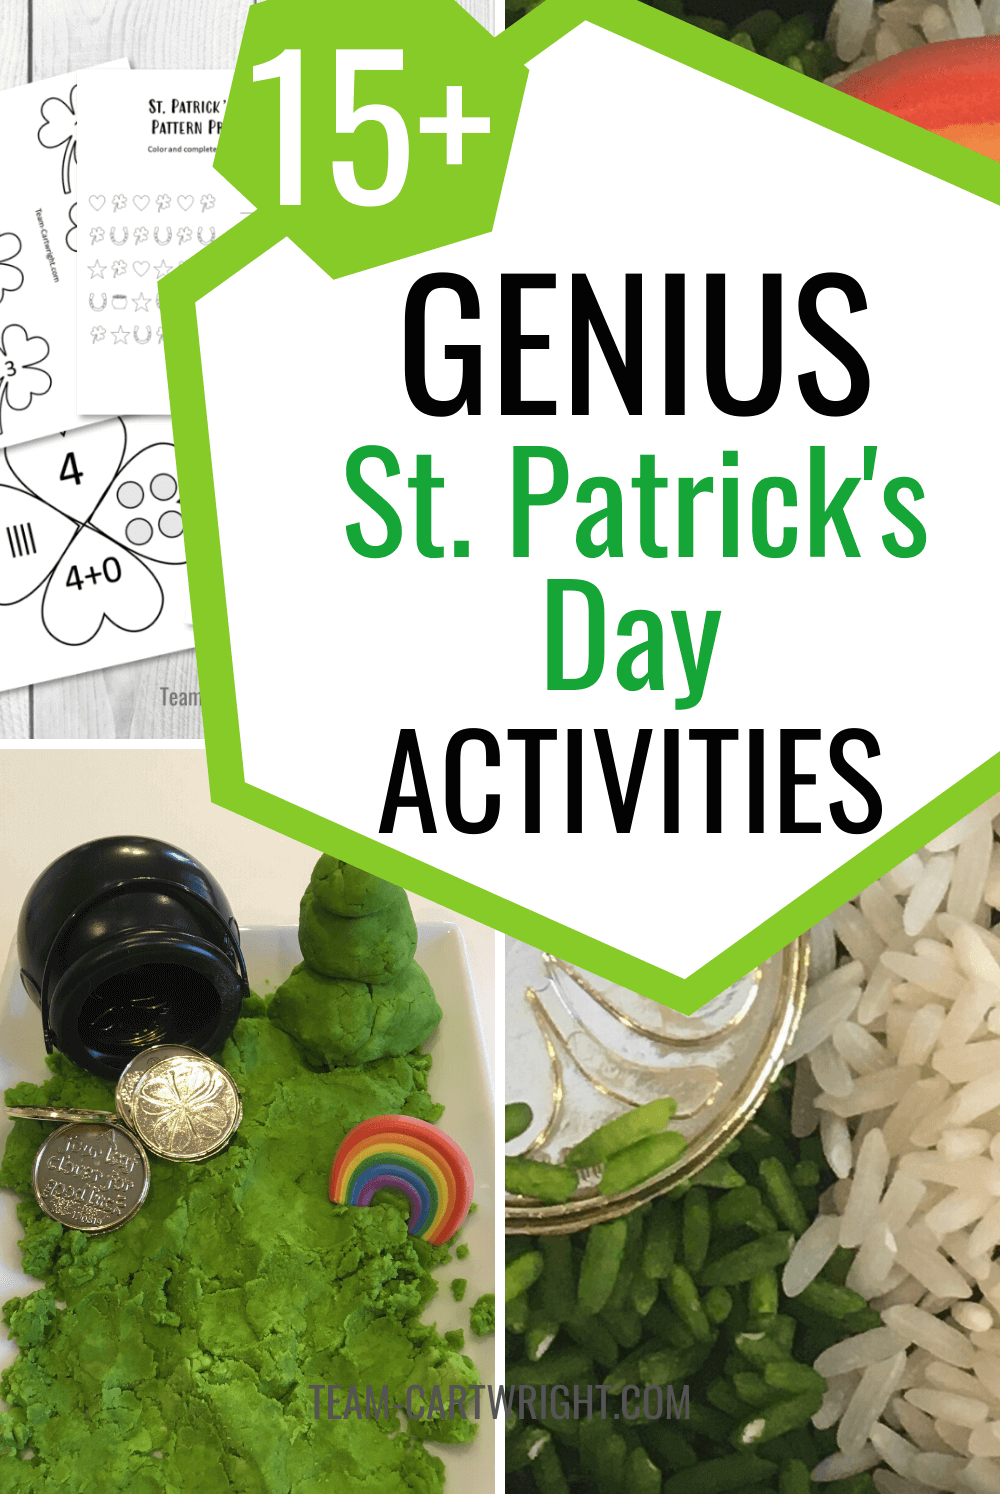 Genius St. Patrick's Day Activities